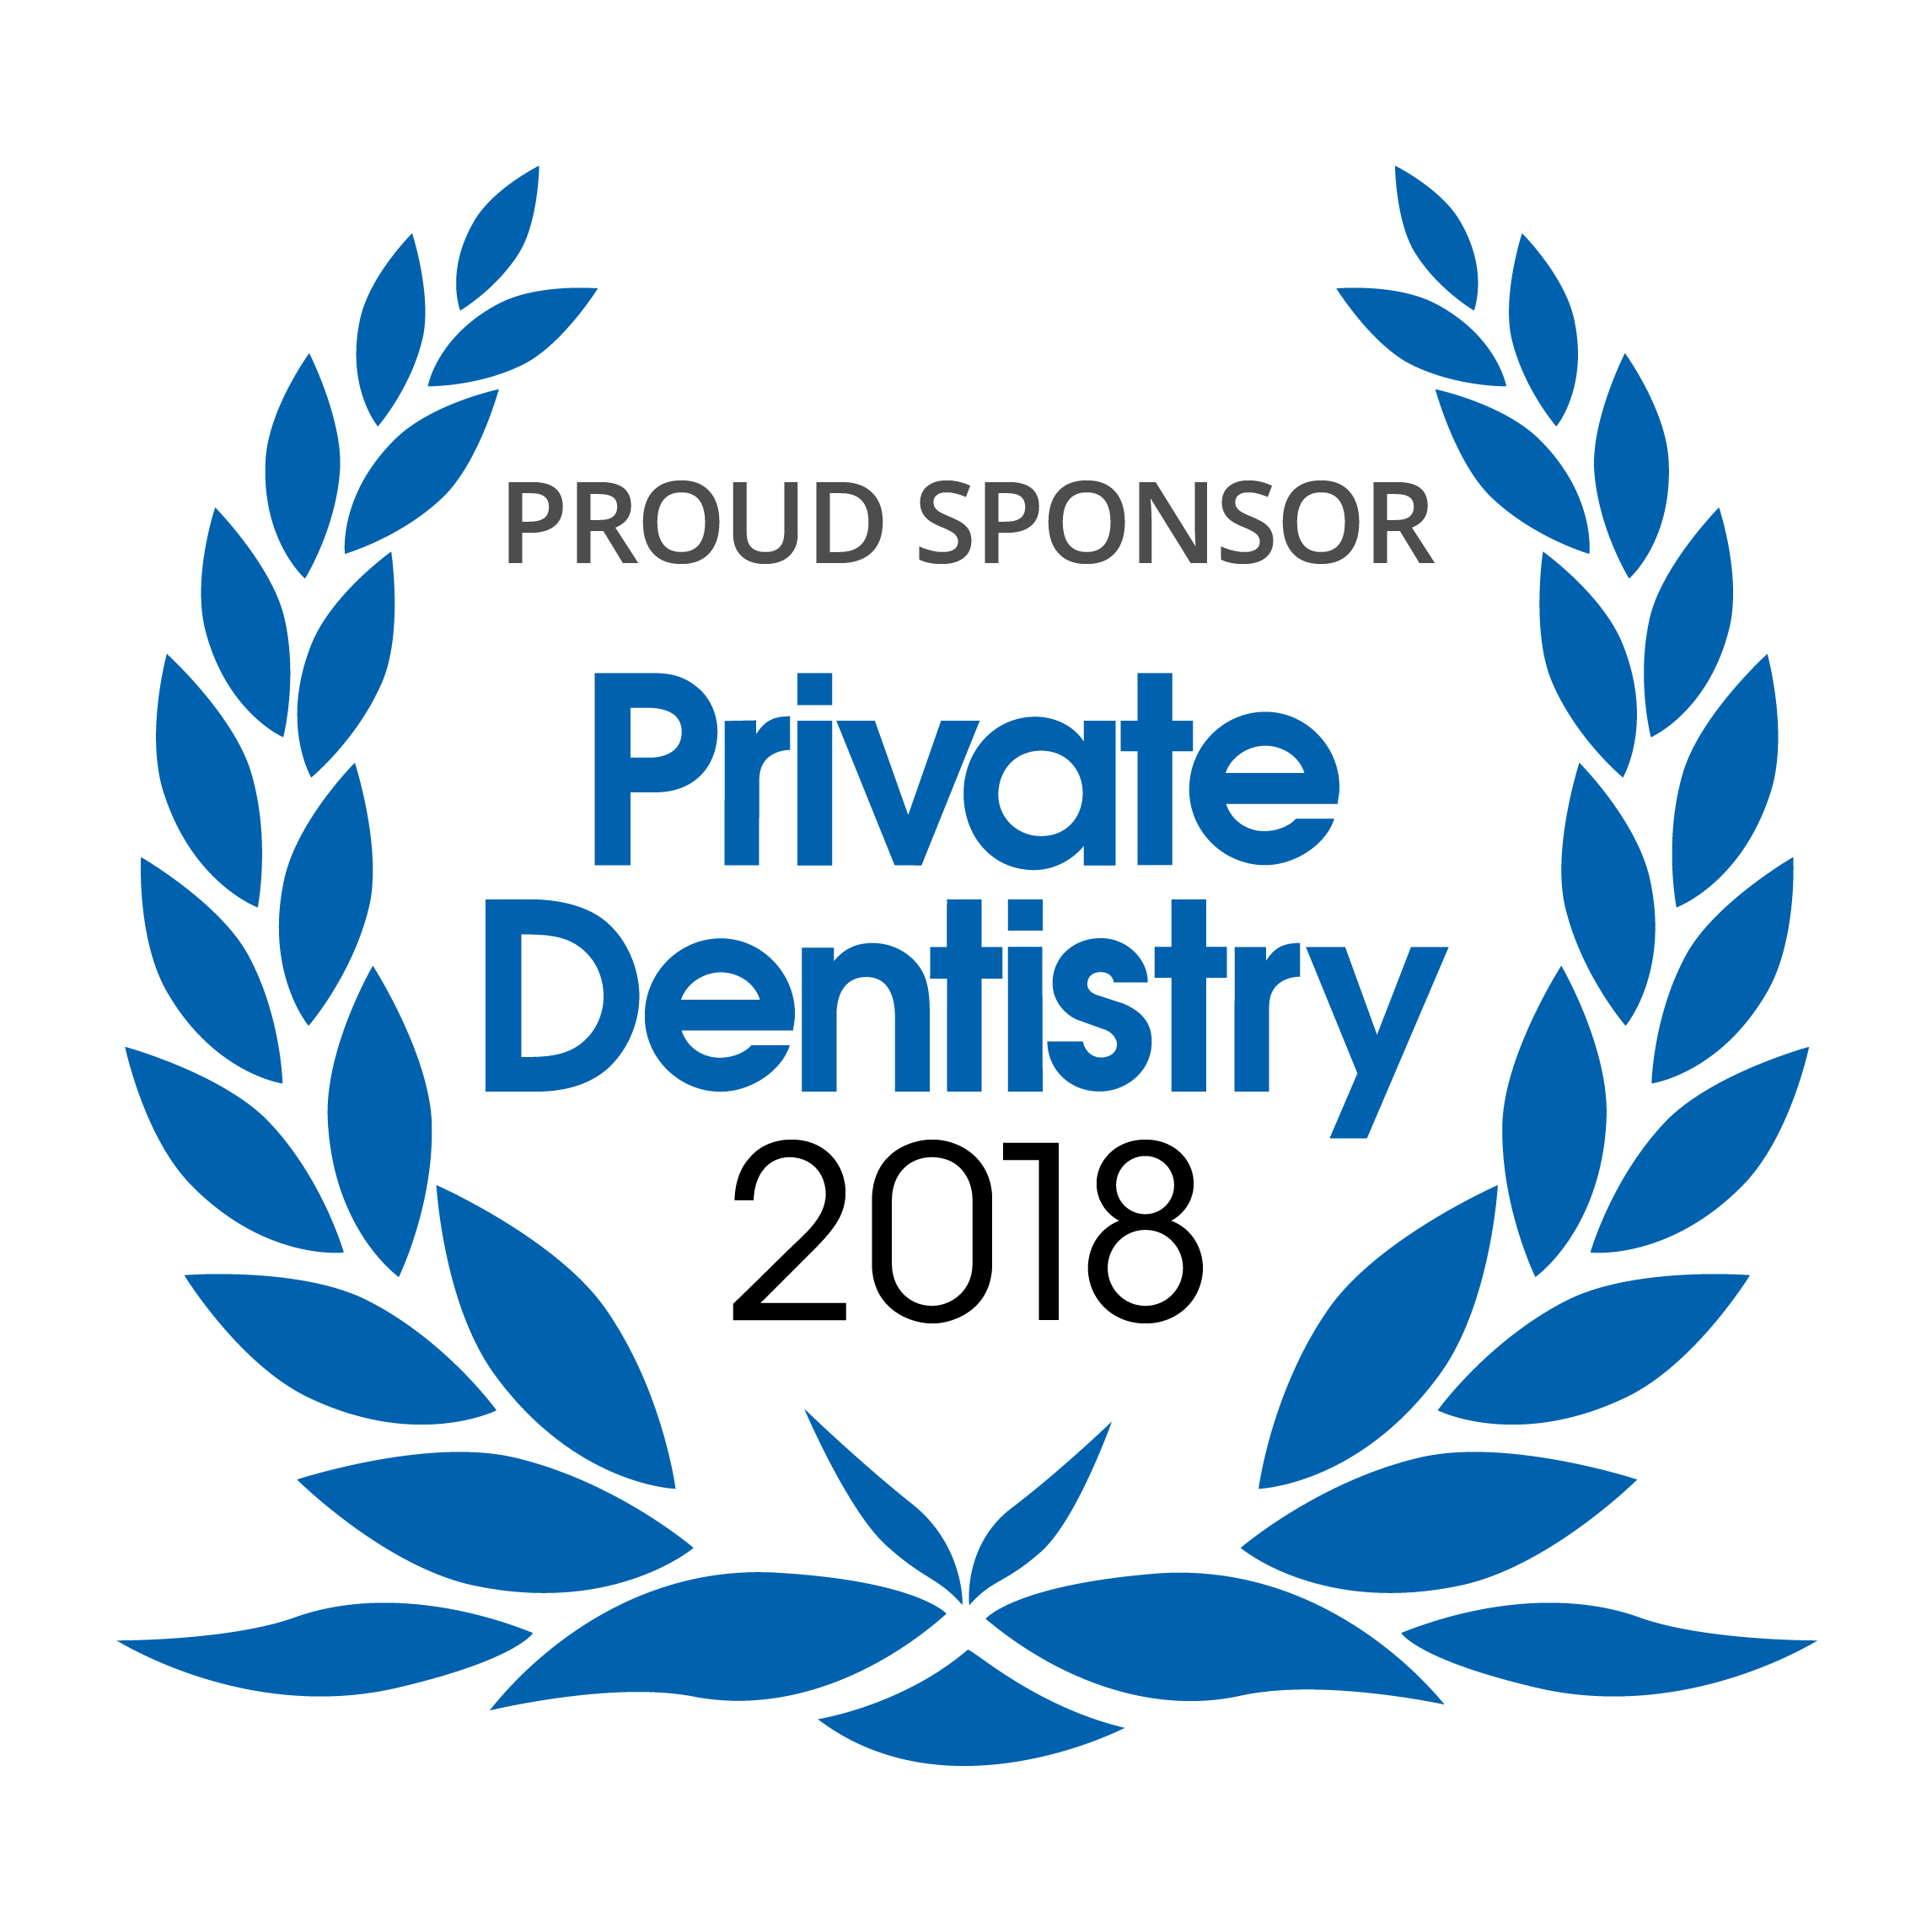 Apollo are proud sponsors of the Private Dentistry Awards 2016